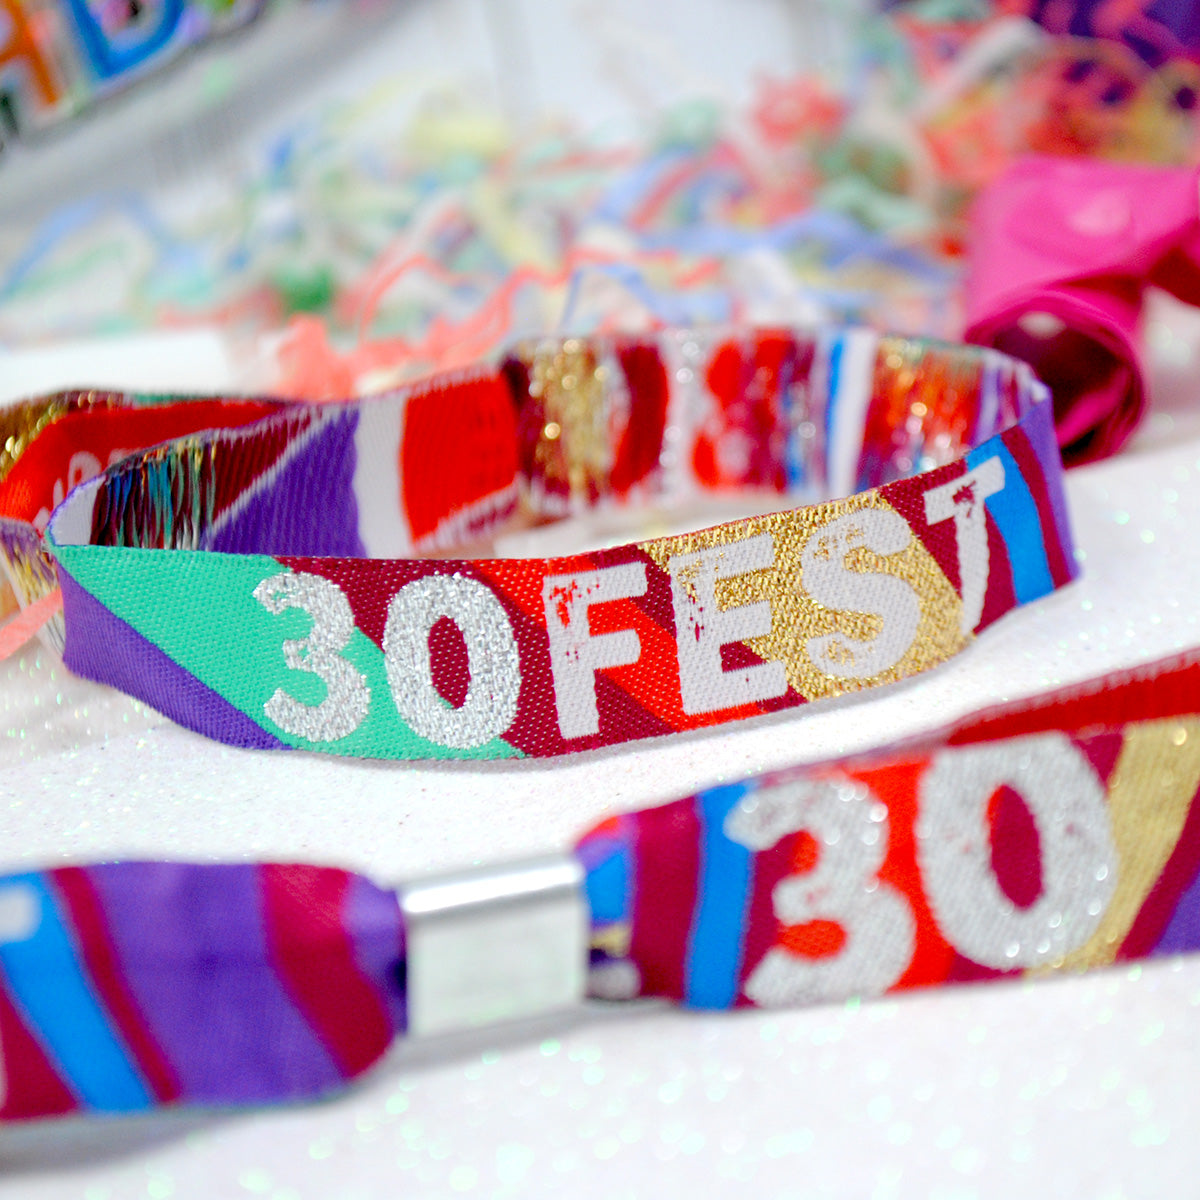 30FEST 30TH BIRTHDAY FESTIVAL PARTY FAVOUR WRISTBANDS